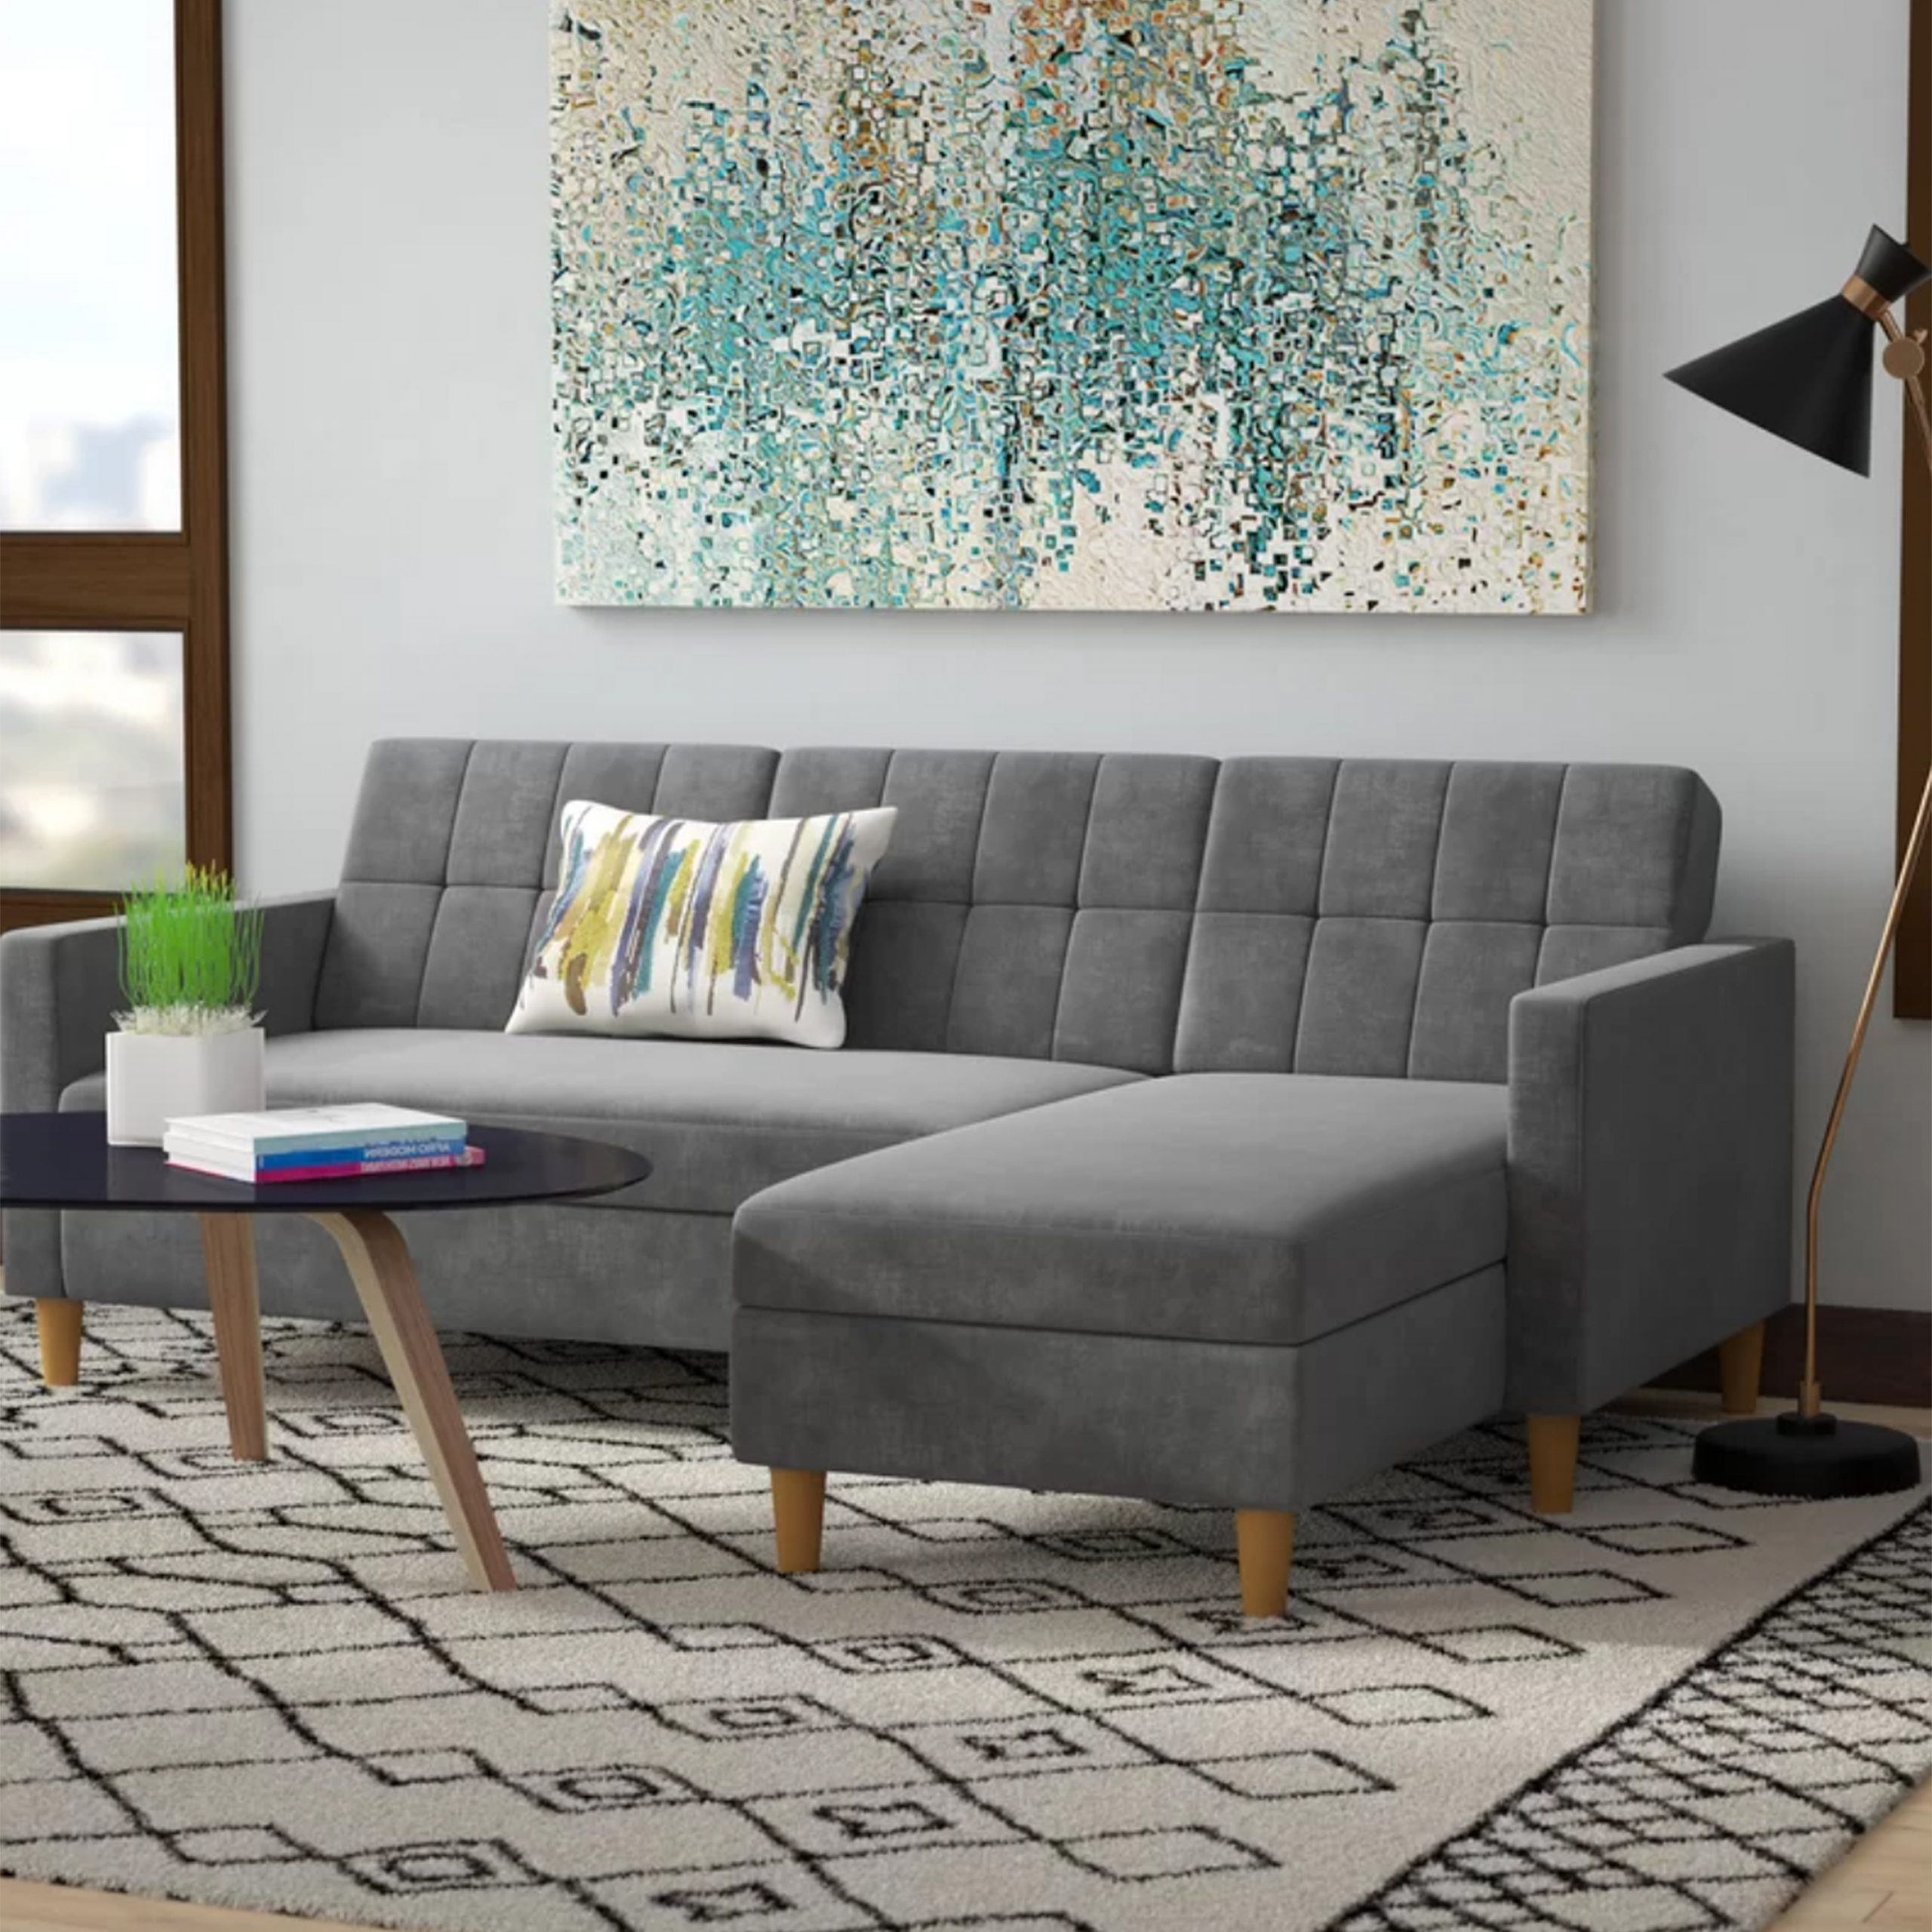 [%Surprise! 67% Off Astrid Wicker Patio Sofa With Cushions Throughout Newest Astrid Wicker Patio Sofas With Cushions|Astrid Wicker Patio Sofas With Cushions Regarding 2020 Surprise! 67% Off Astrid Wicker Patio Sofa With Cushions|Latest Astrid Wicker Patio Sofas With Cushions Regarding Surprise! 67% Off Astrid Wicker Patio Sofa With Cushions|Most Recent Surprise! 67% Off Astrid Wicker Patio Sofa With Cushions Within Astrid Wicker Patio Sofas With Cushions%] (View 1 of 25)